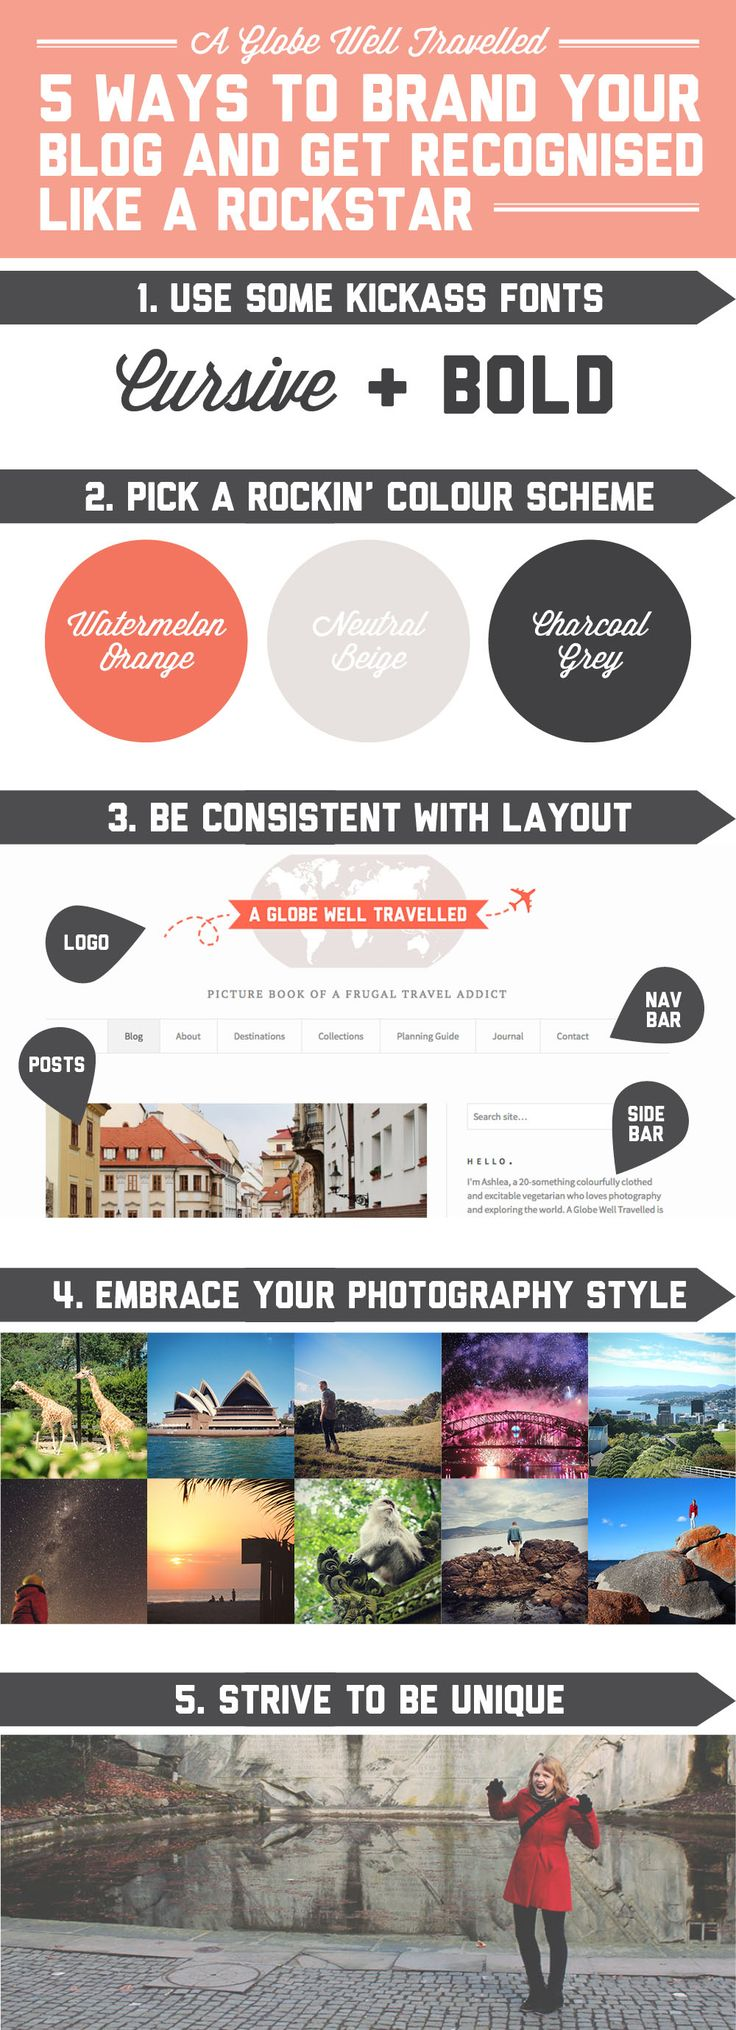 5 ways to brand your blog (and get recognised like a rockstar) / A Globe Well Travelled